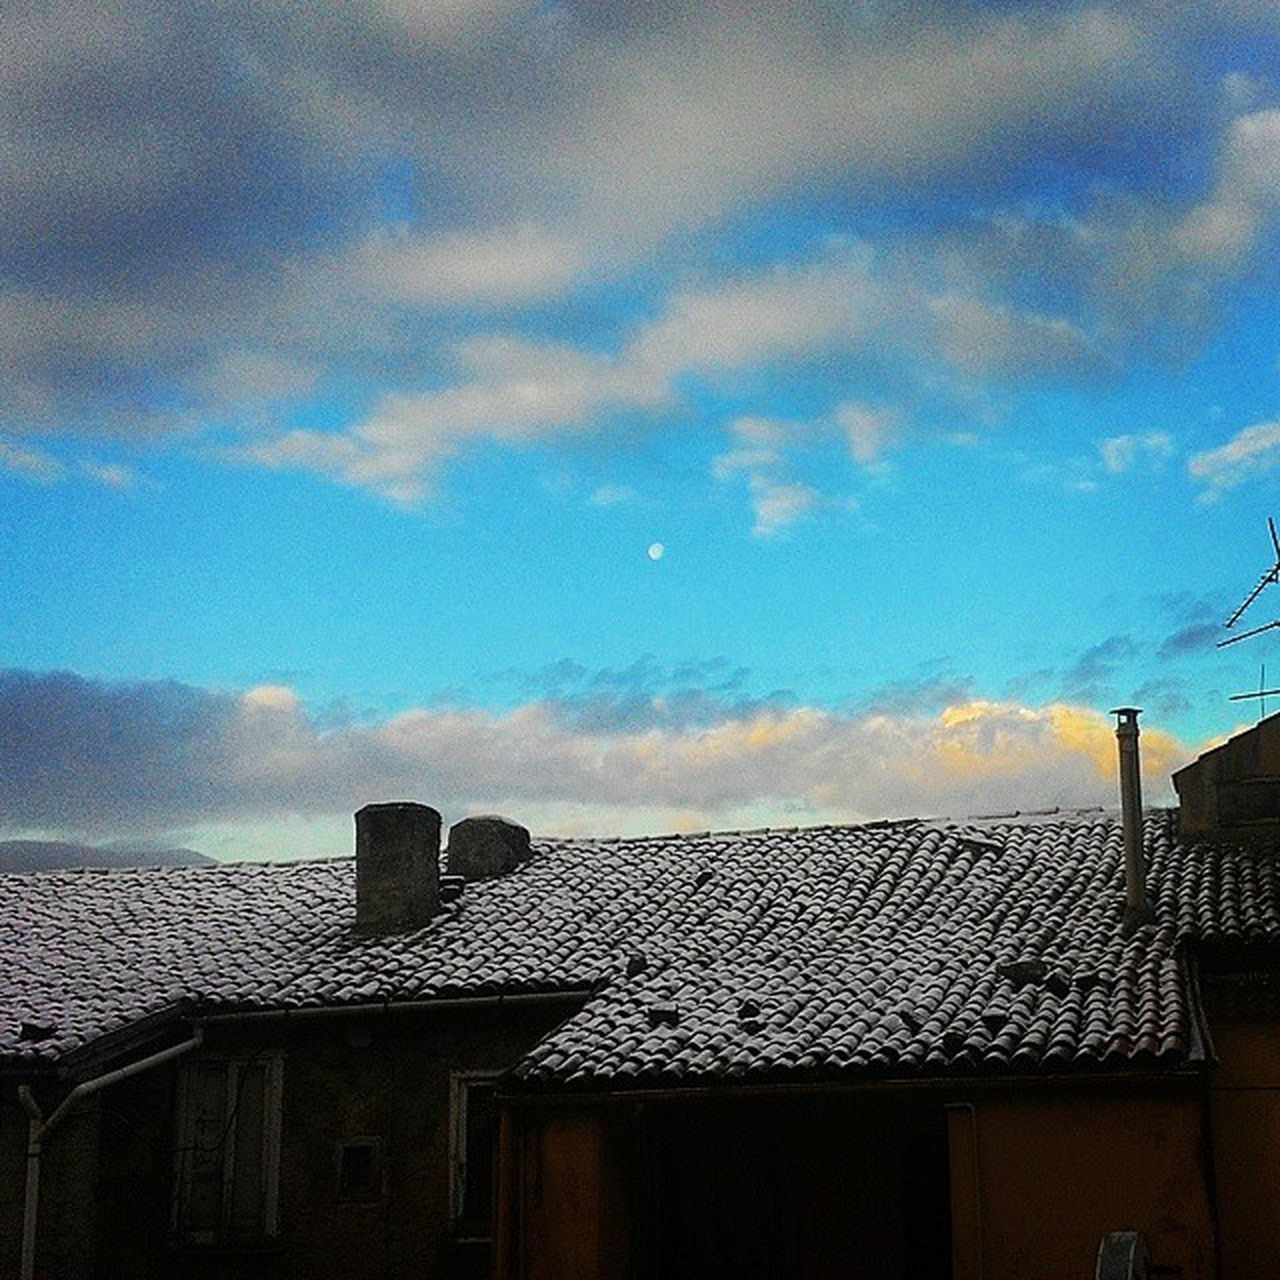 architecture, built structure, building exterior, cloud - sky, sky, no people, low angle view, house, day, residential building, outdoors, roof, nature, tiled roof